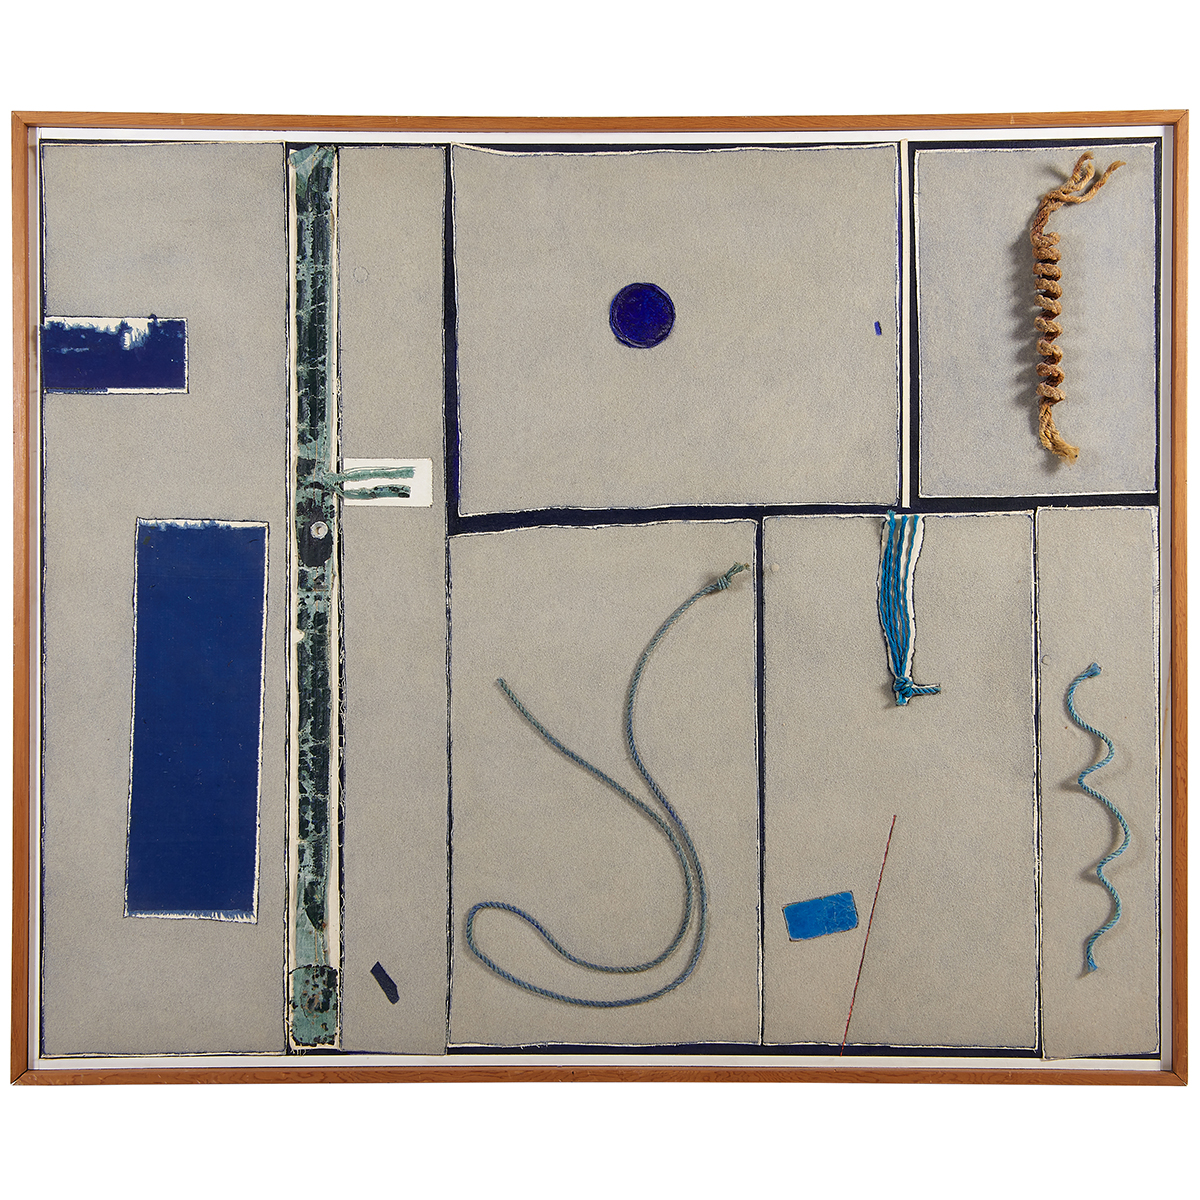 "Tony Vevers, (British/American, 1926-2008), Blue-Marine, 1984, mixed media, 53 1/2"" x 65 3/4"""